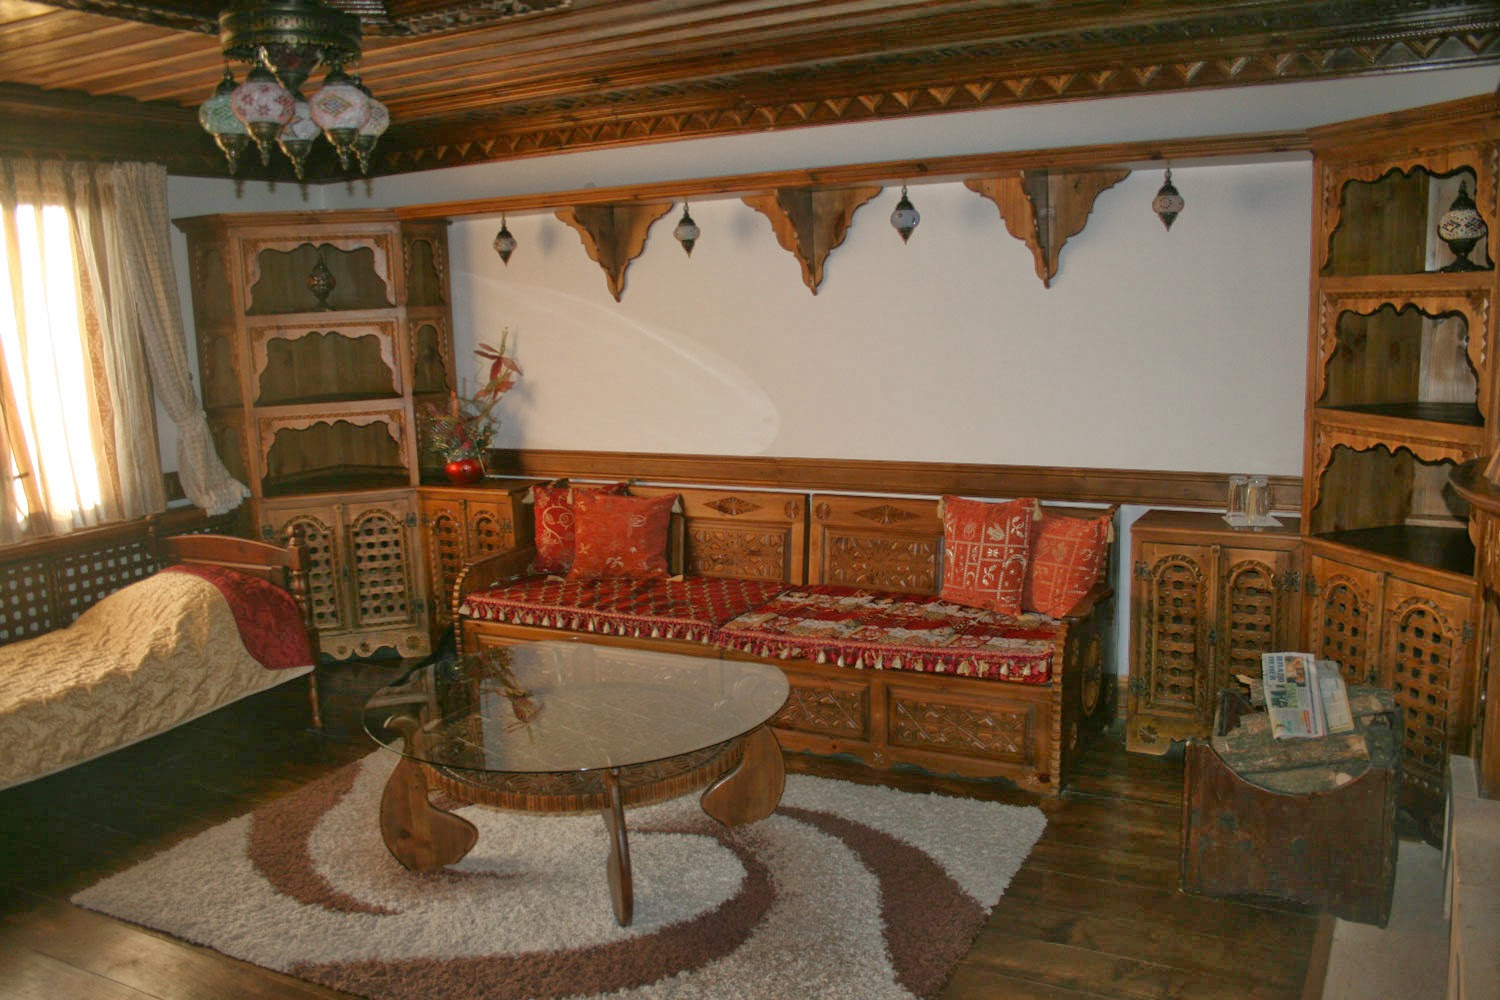 Lovely carved wood in the front room